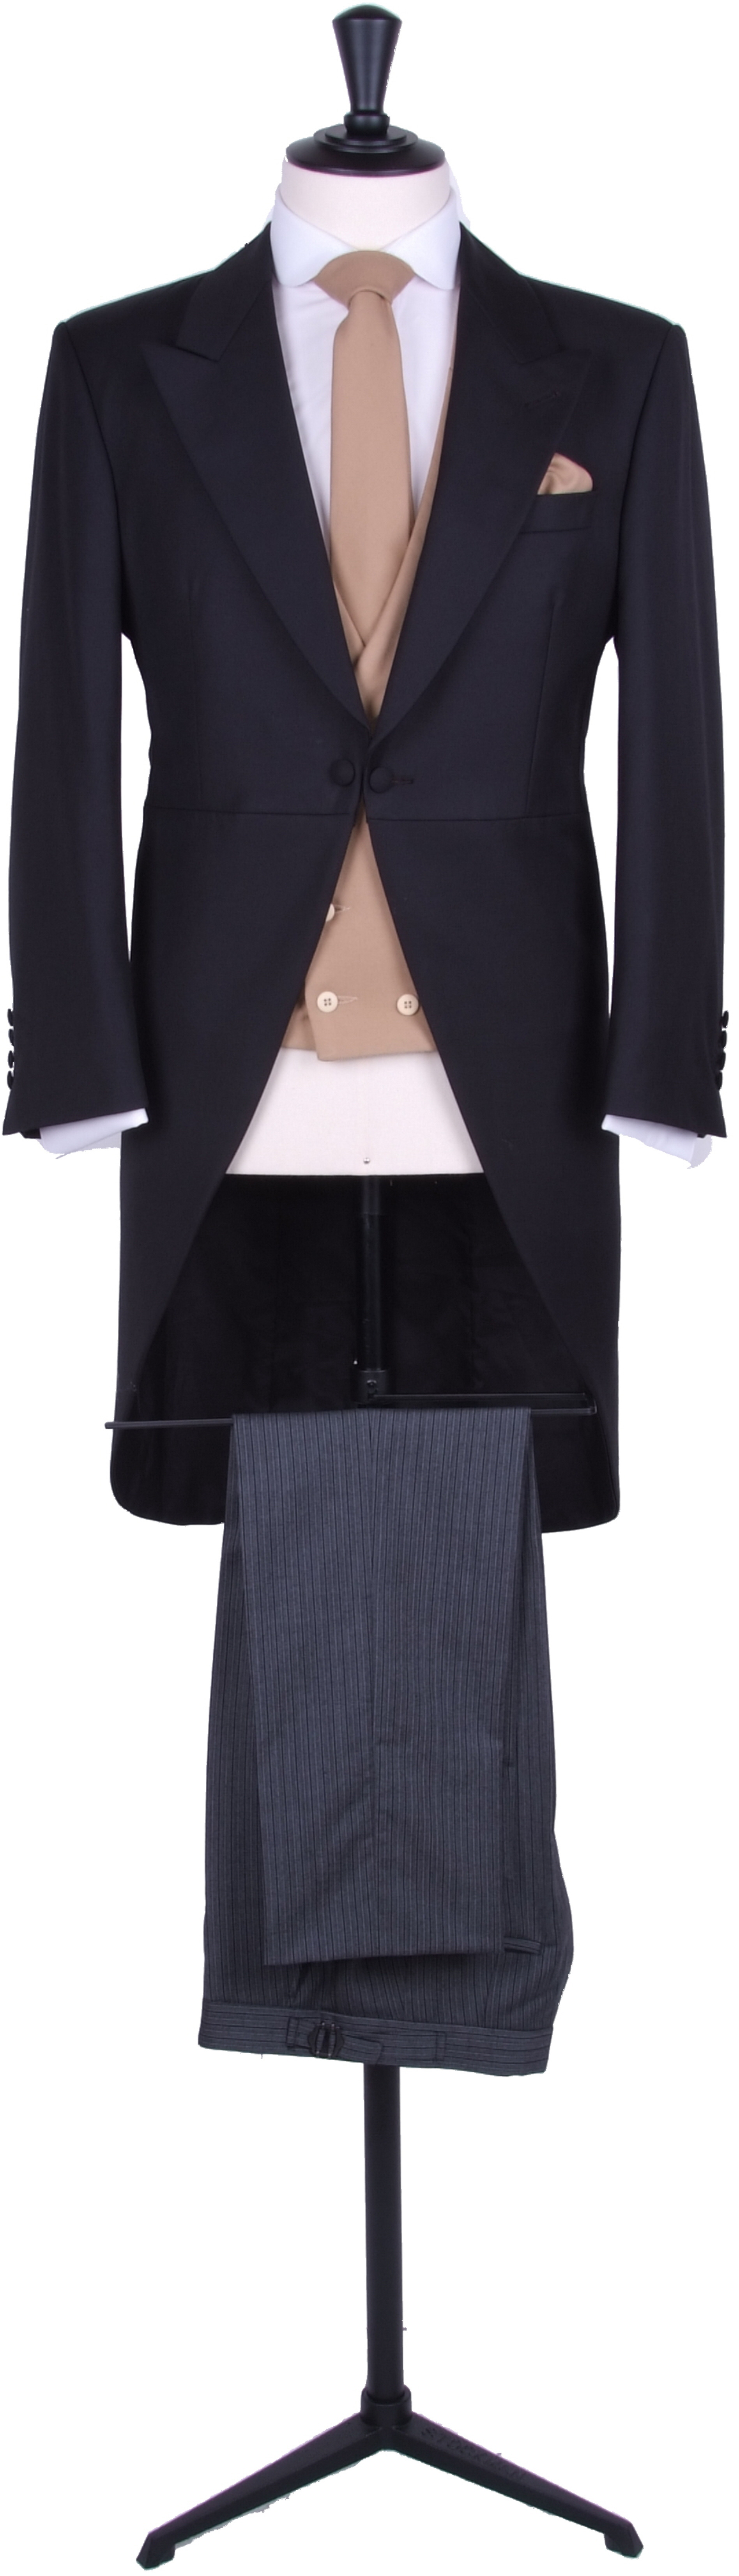 Light weight tailcoat suit